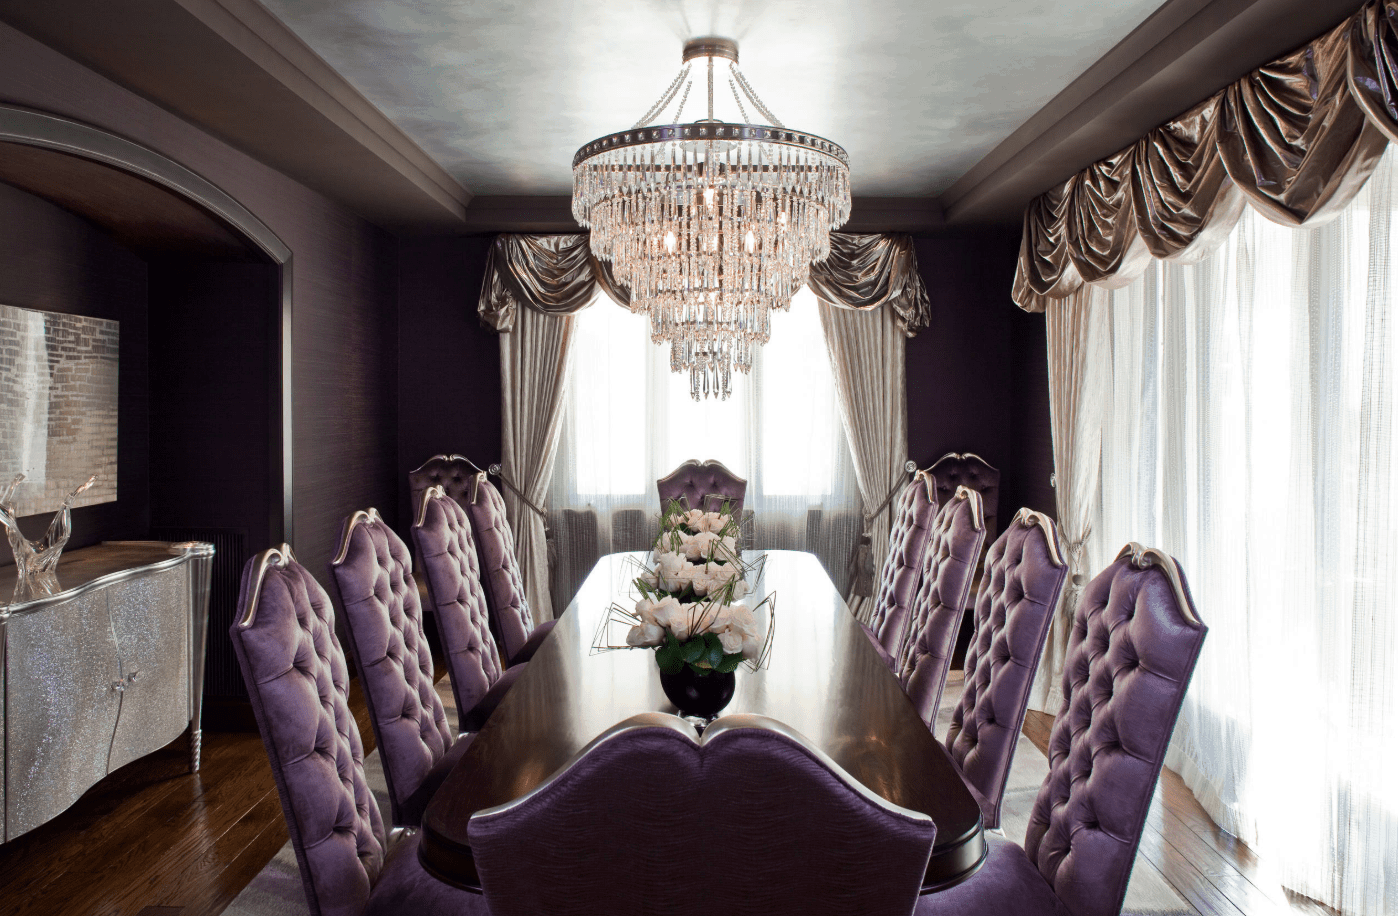 A glamorous purple dining room featuring a luxurious dining table and chairs set lighted by a grand chandelier.